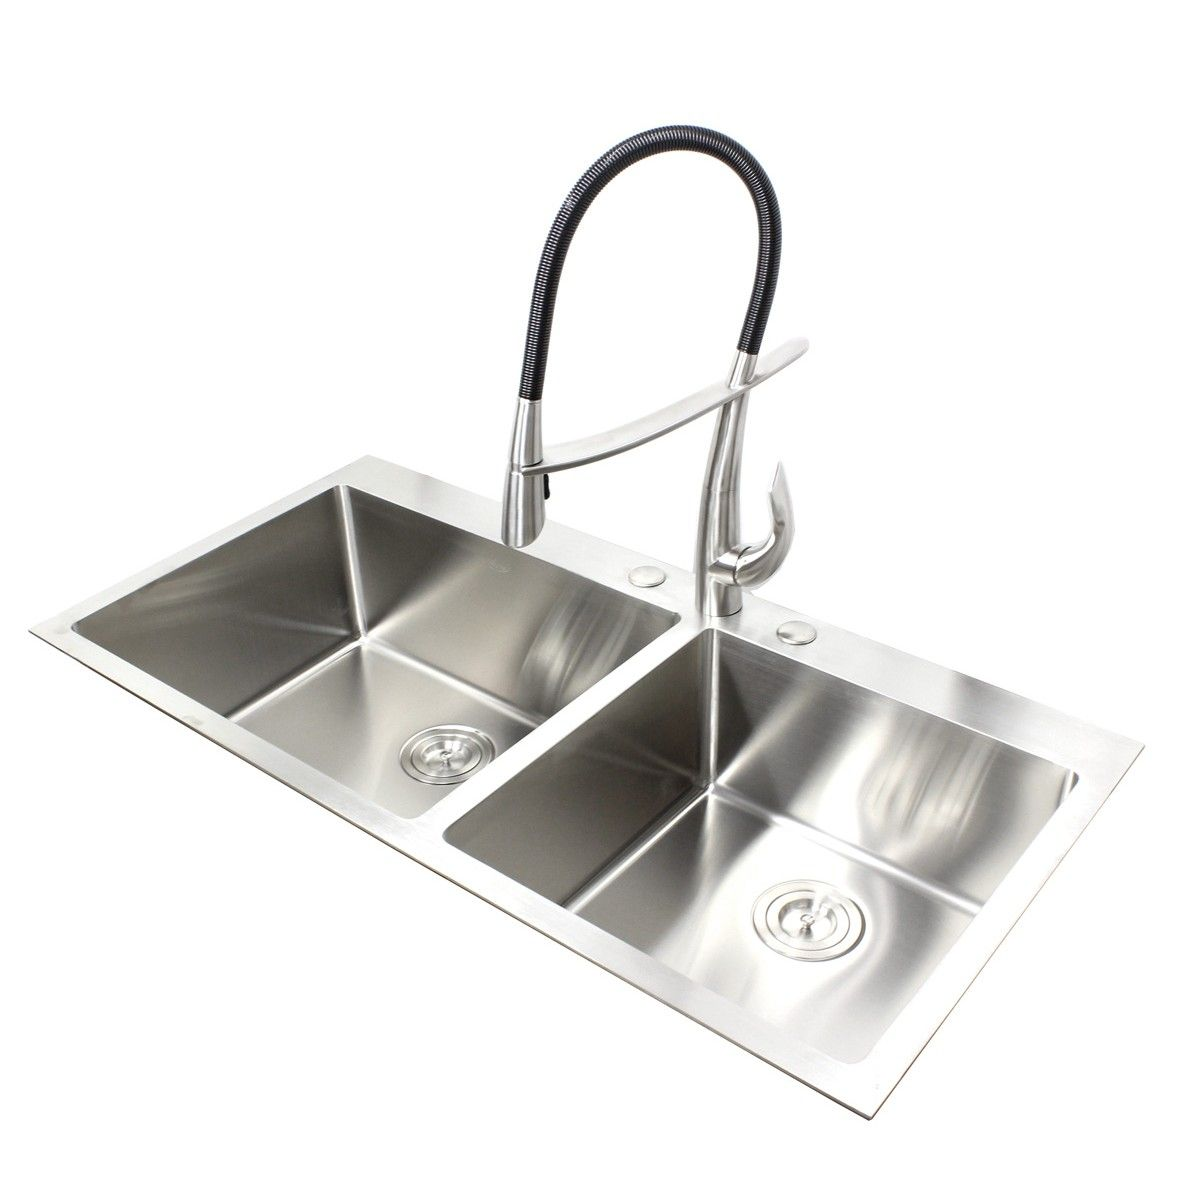 43 inch topmount   drop in stainless steel double bowl kitchen sink 15mm radius design 43 inch topmount   drop in stainless steel double bowl kitchen      rh   pinterest com